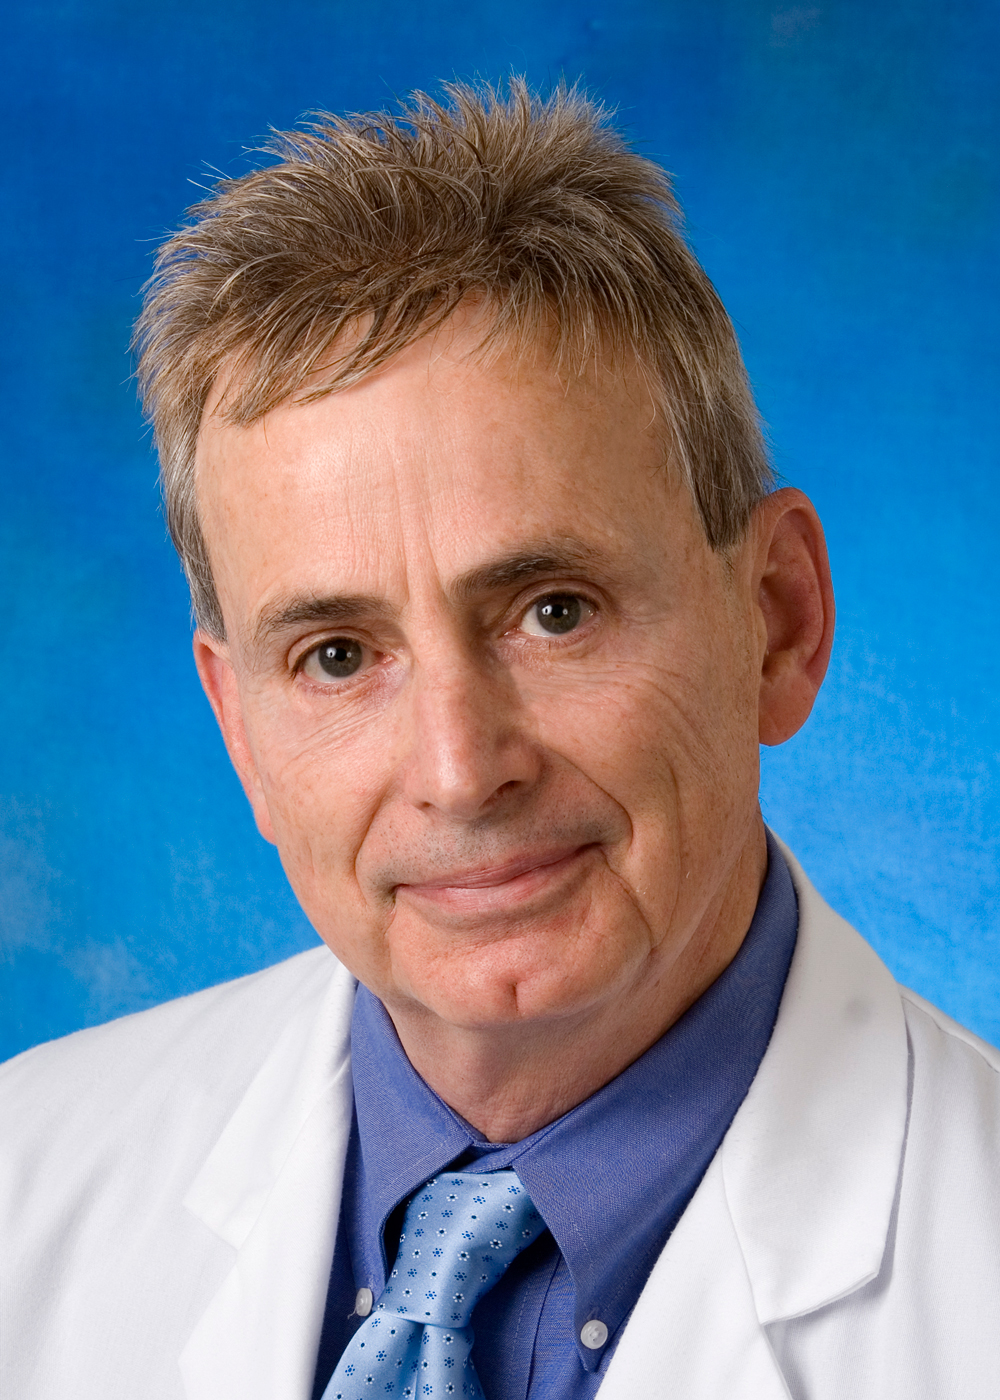 David Stanley, MD, is a board-certified vascular surgeon and Medical Director of the Methodist Wound Treatment Center.